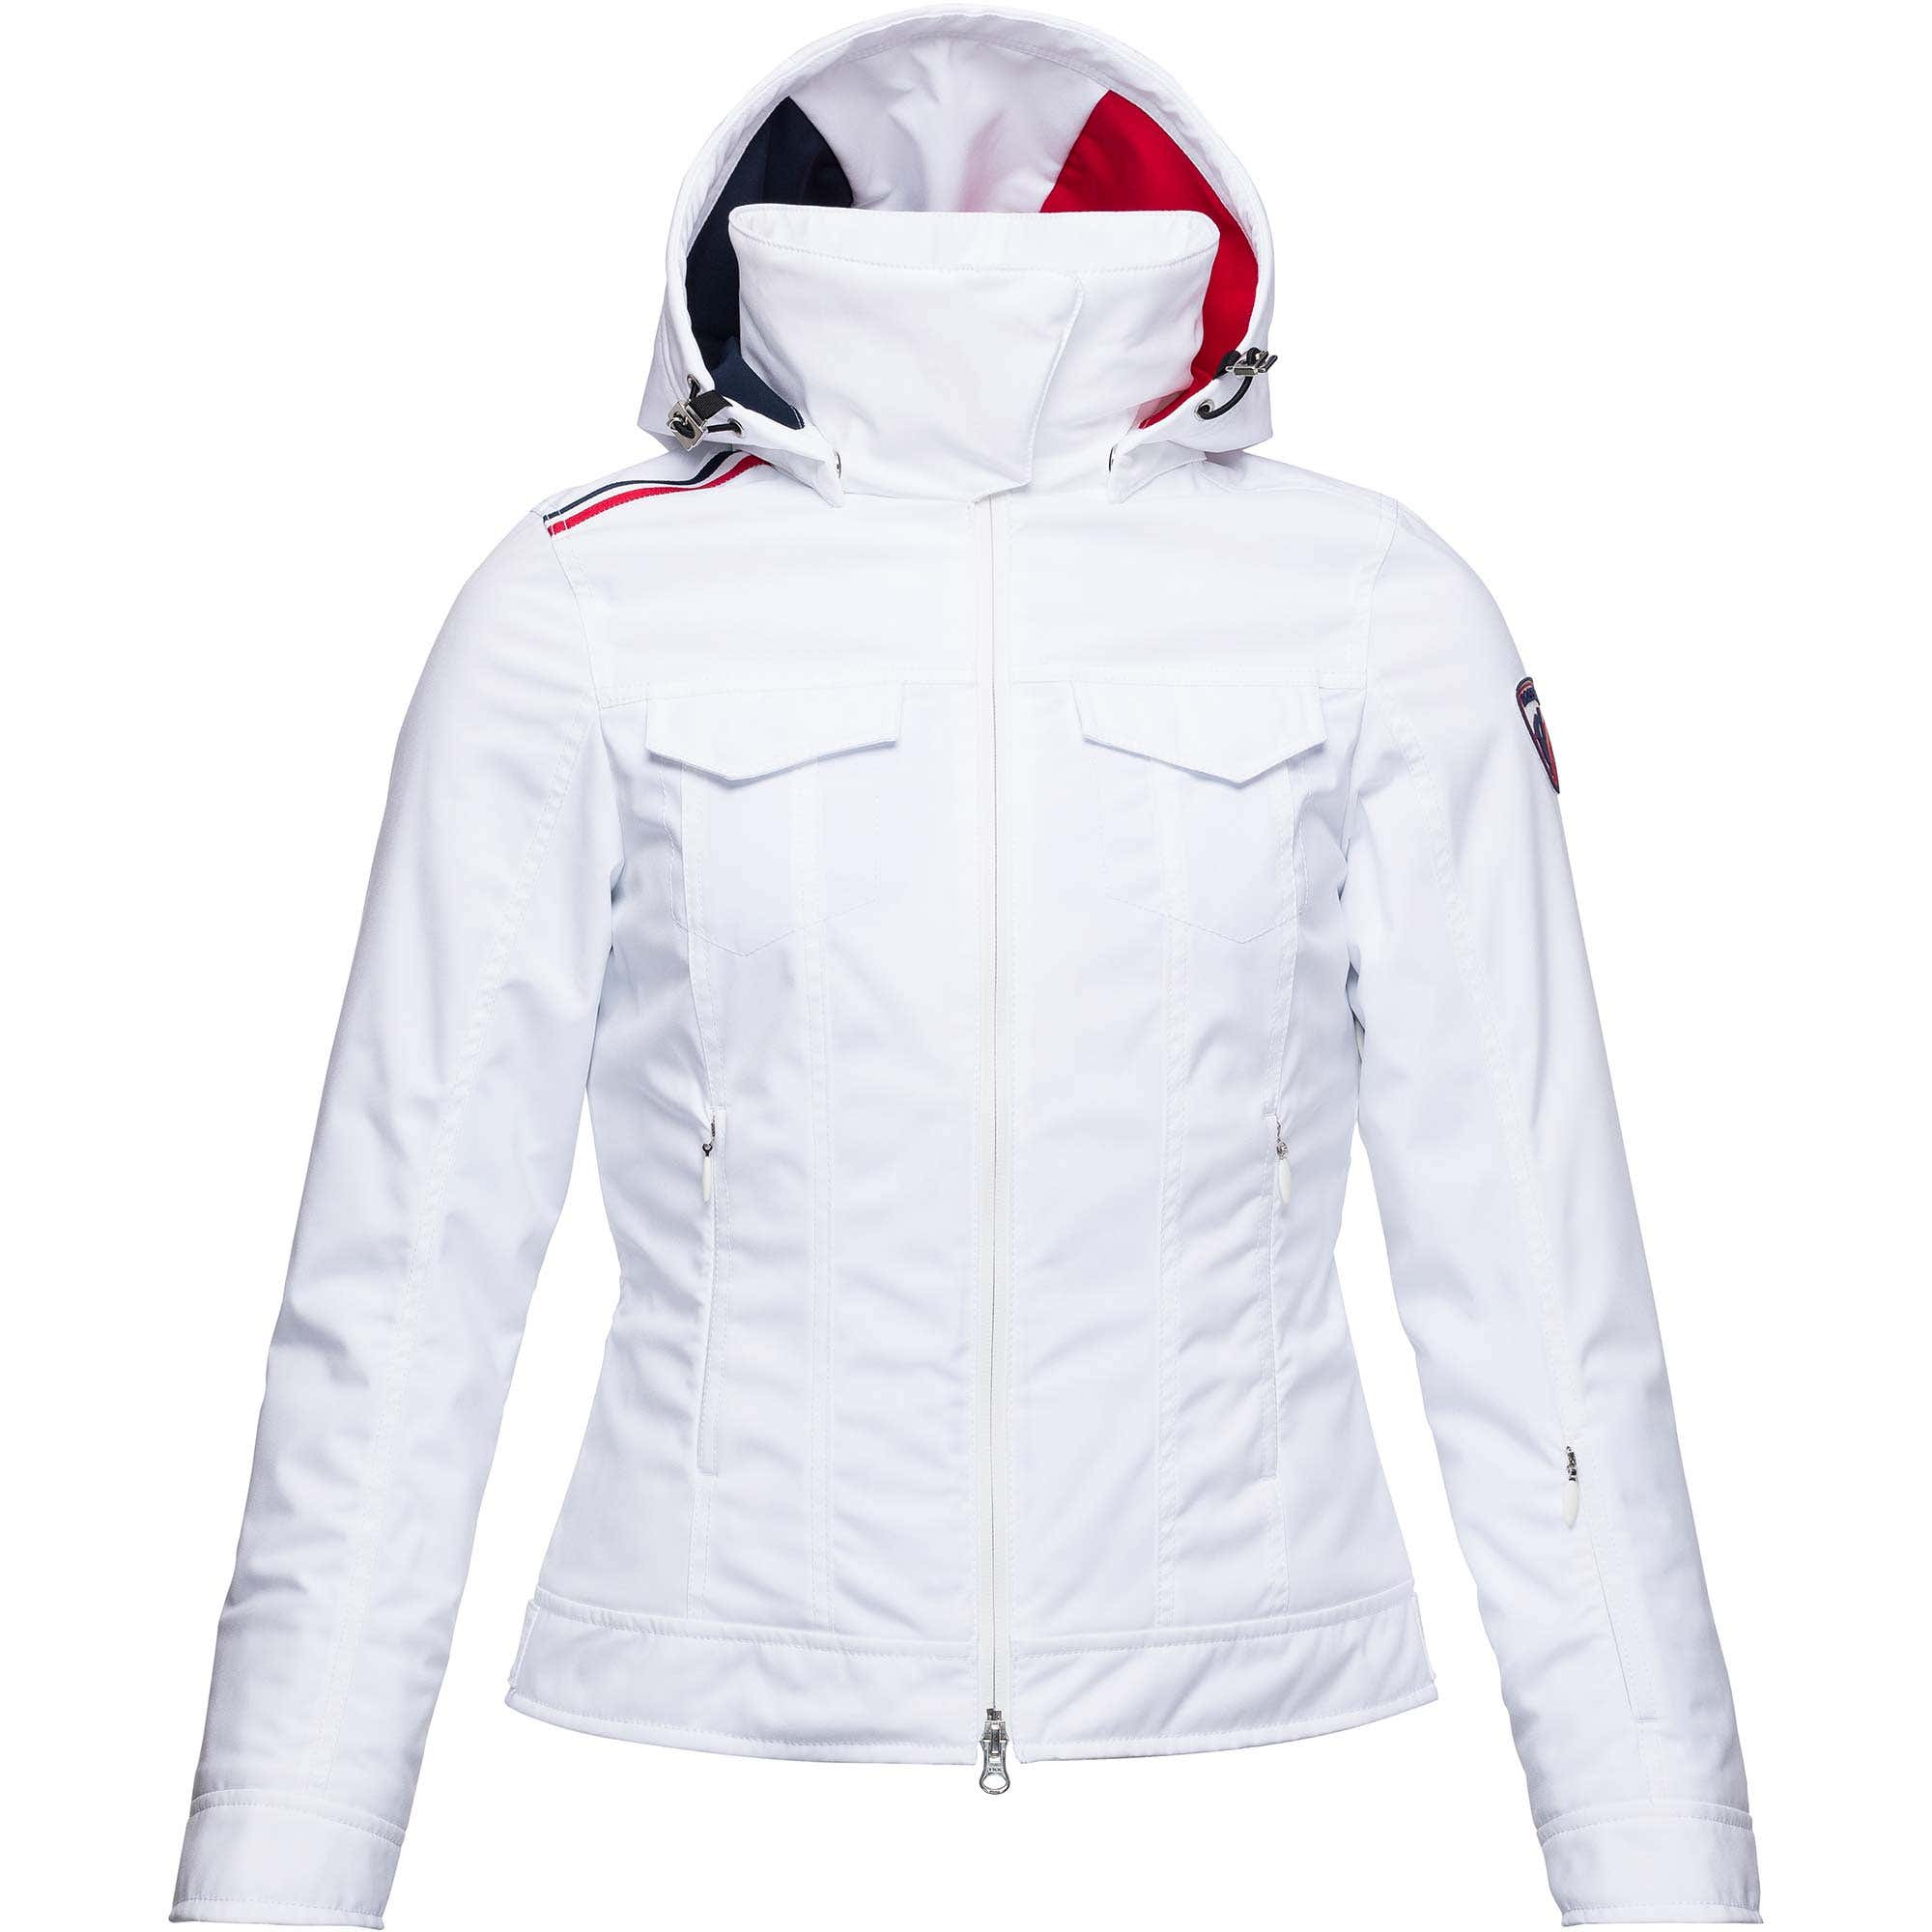 Image of W MEDAILLE JACKET